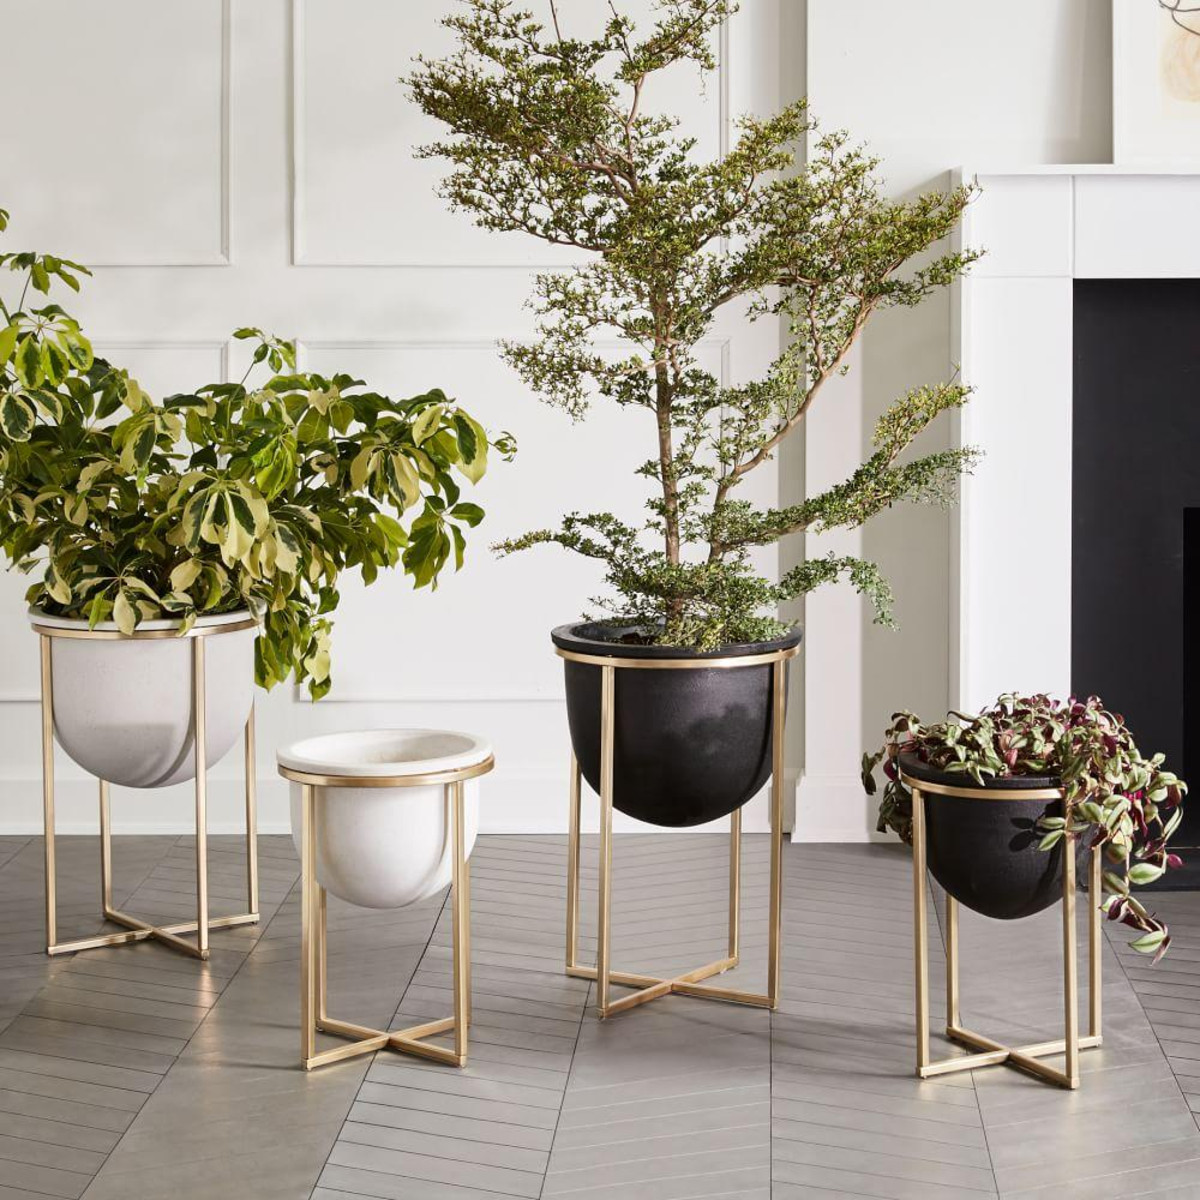 standing planter from West Elm